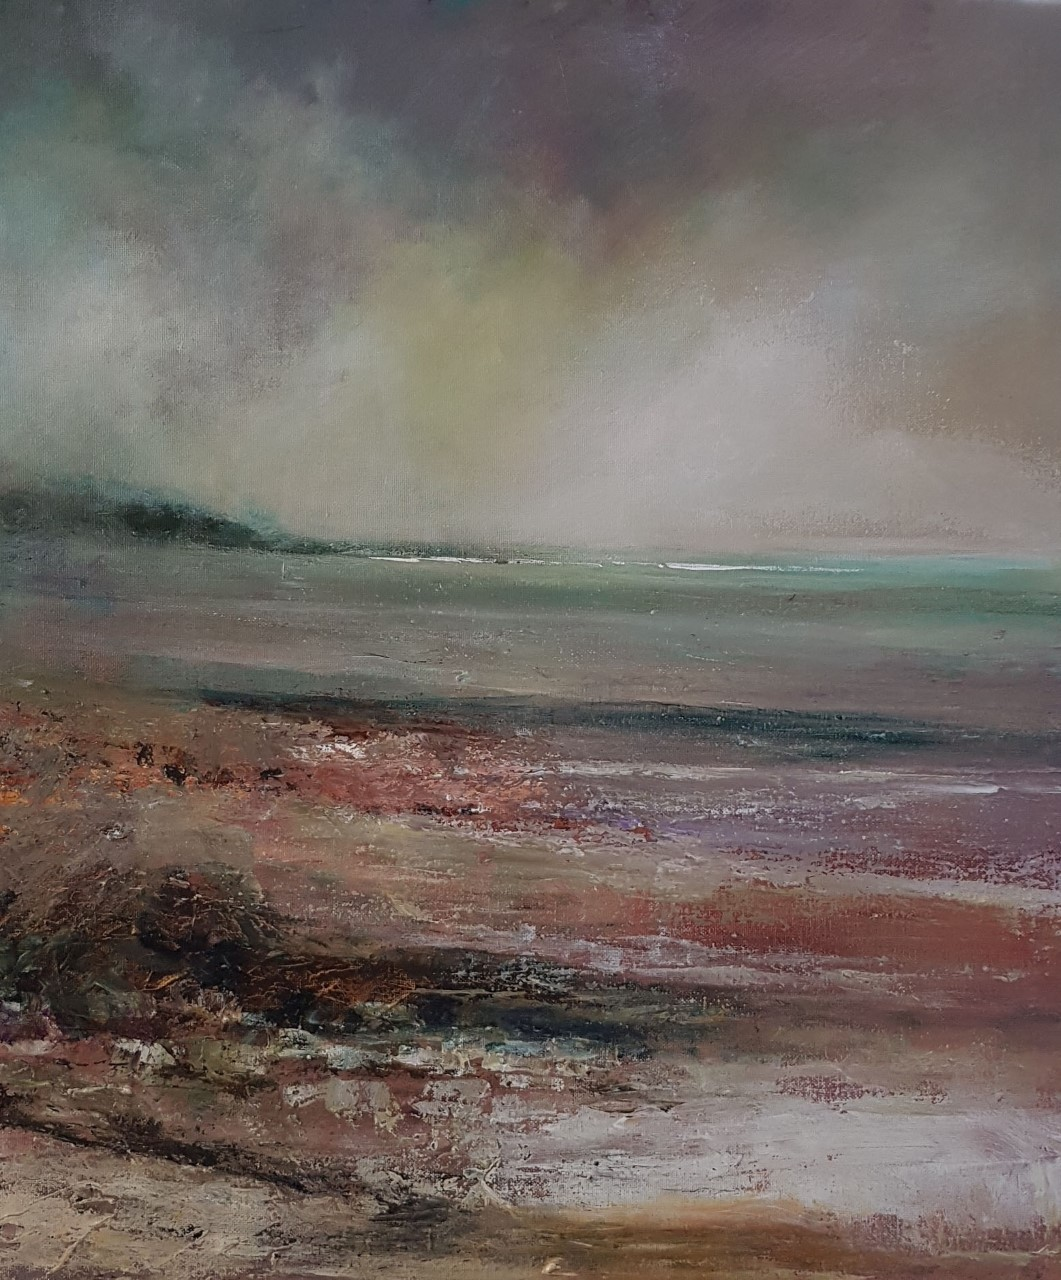 A Timeless Place by John Tregembo at the Saffron Walden Gallery